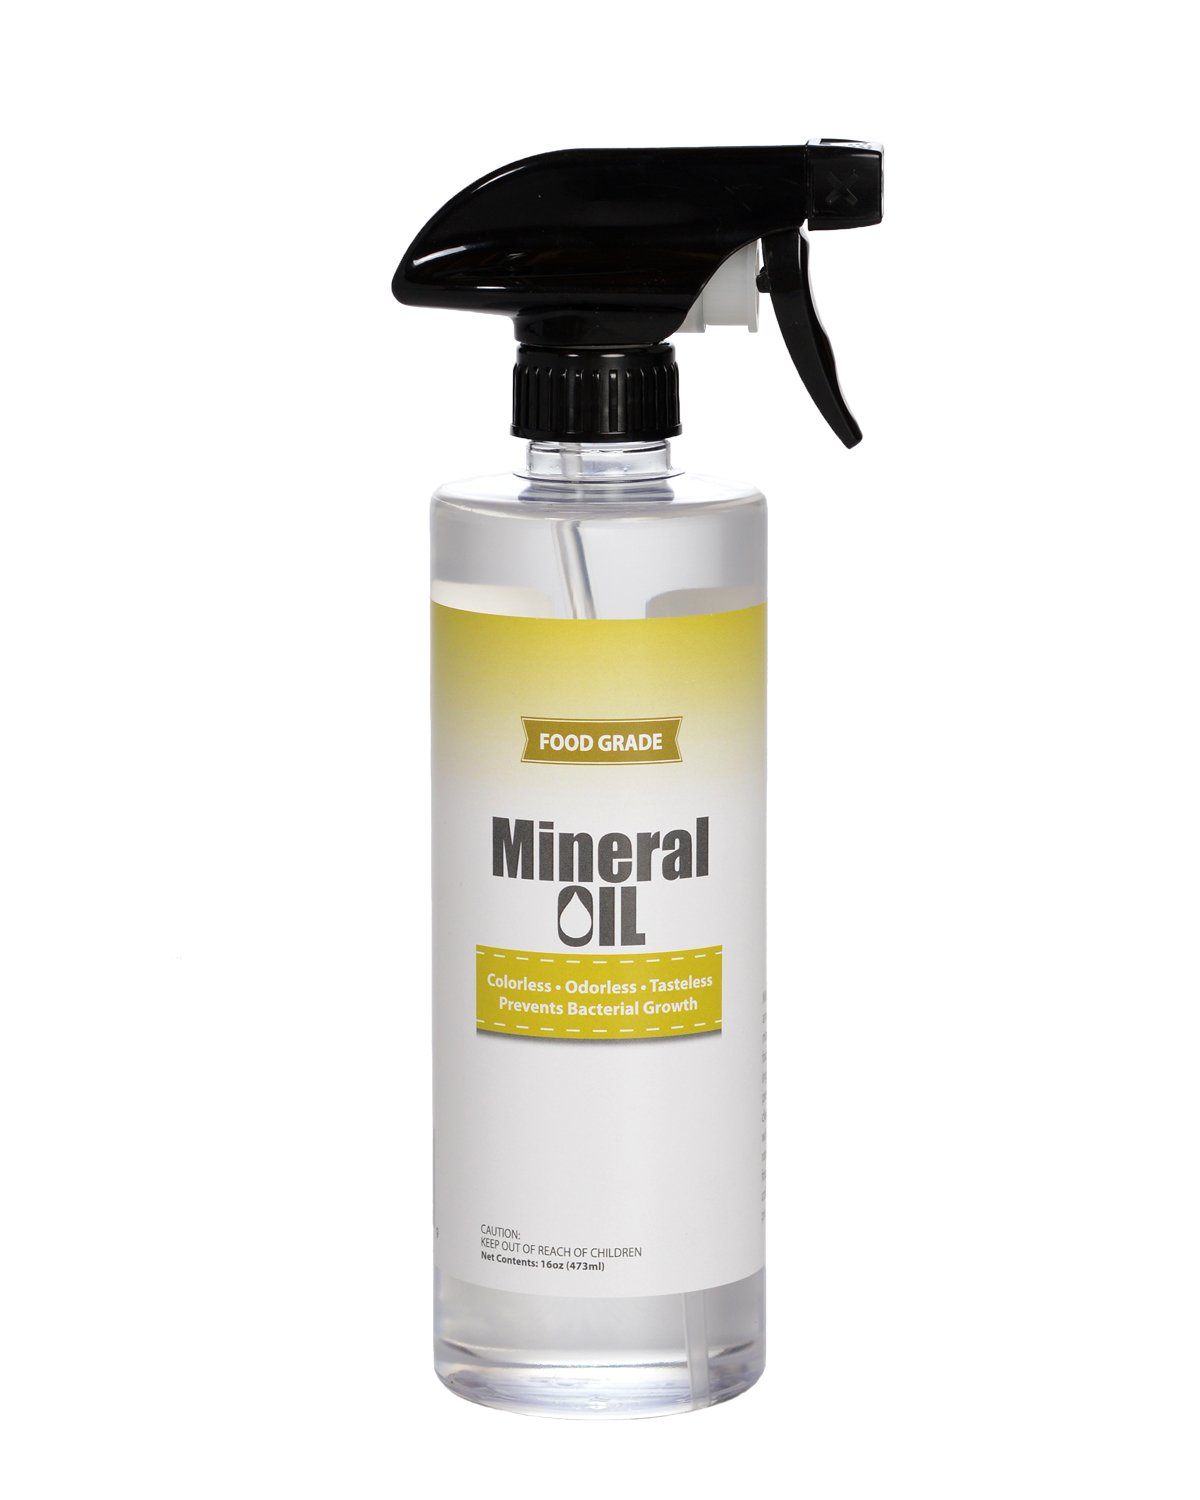 Premium 100% Pure Food Grade Mineral Oil, 16oz Spray Bottle, Butcher Block and Cutting Board Oil by Sanco Industries